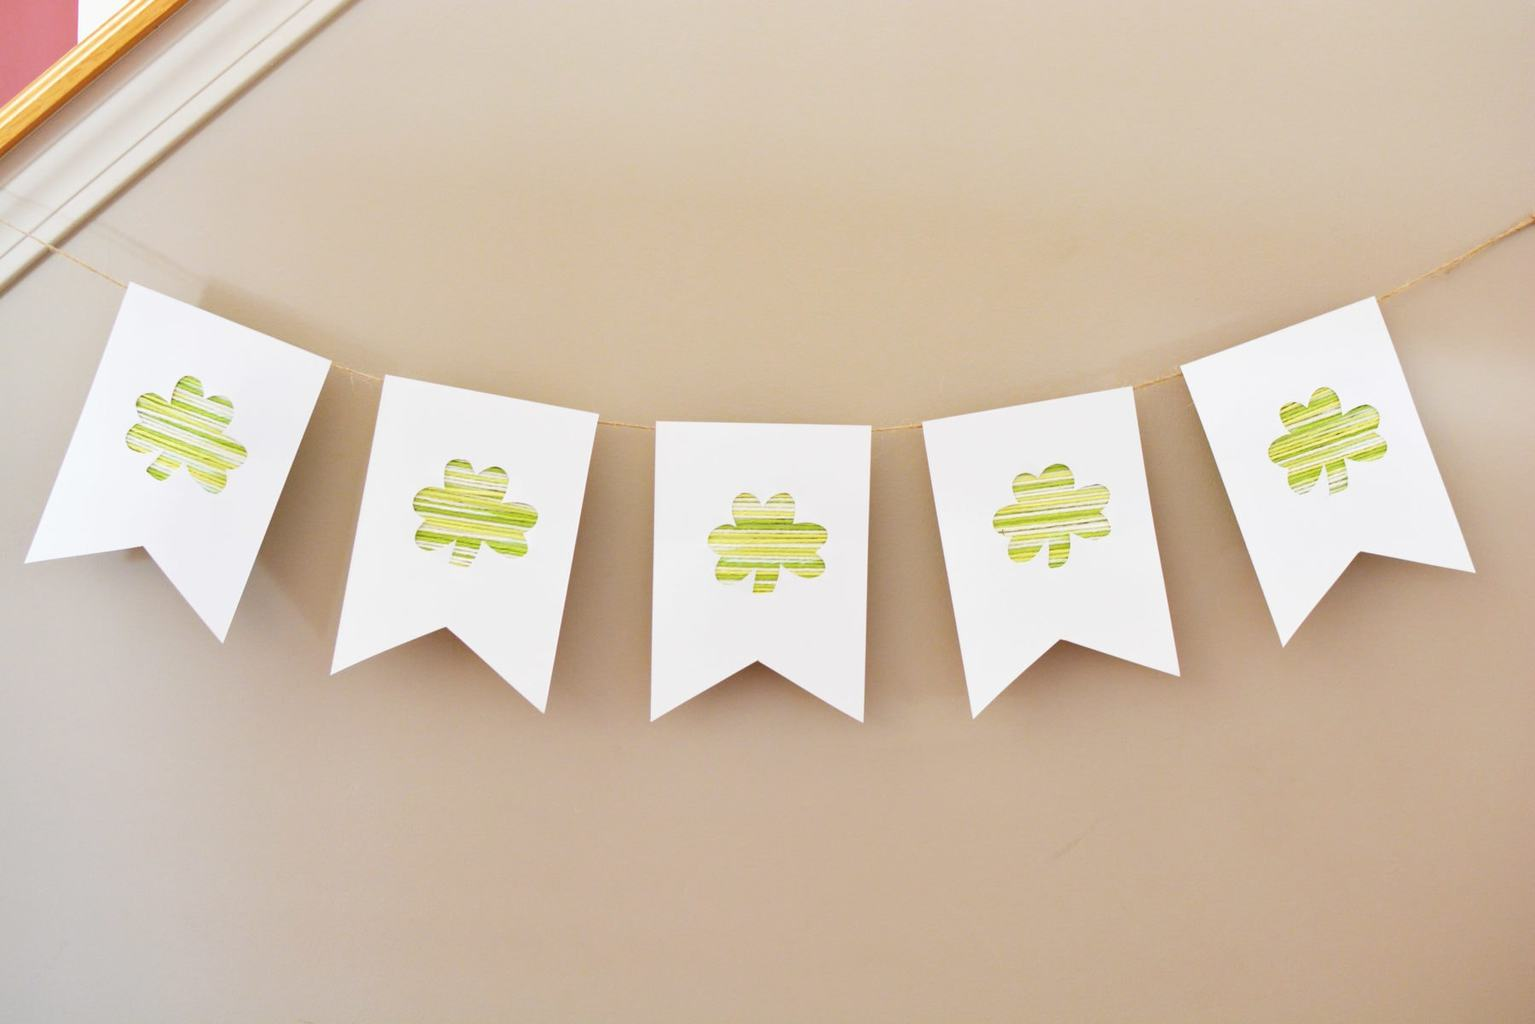 Are you ready for something incredibly cute for St. Patrick's Day? This DIY St. Patrick's Day Banner andHomemade Buntingis super easy to make. It doesn't take many supplies to make this craft, but it's a whole lot of fun.